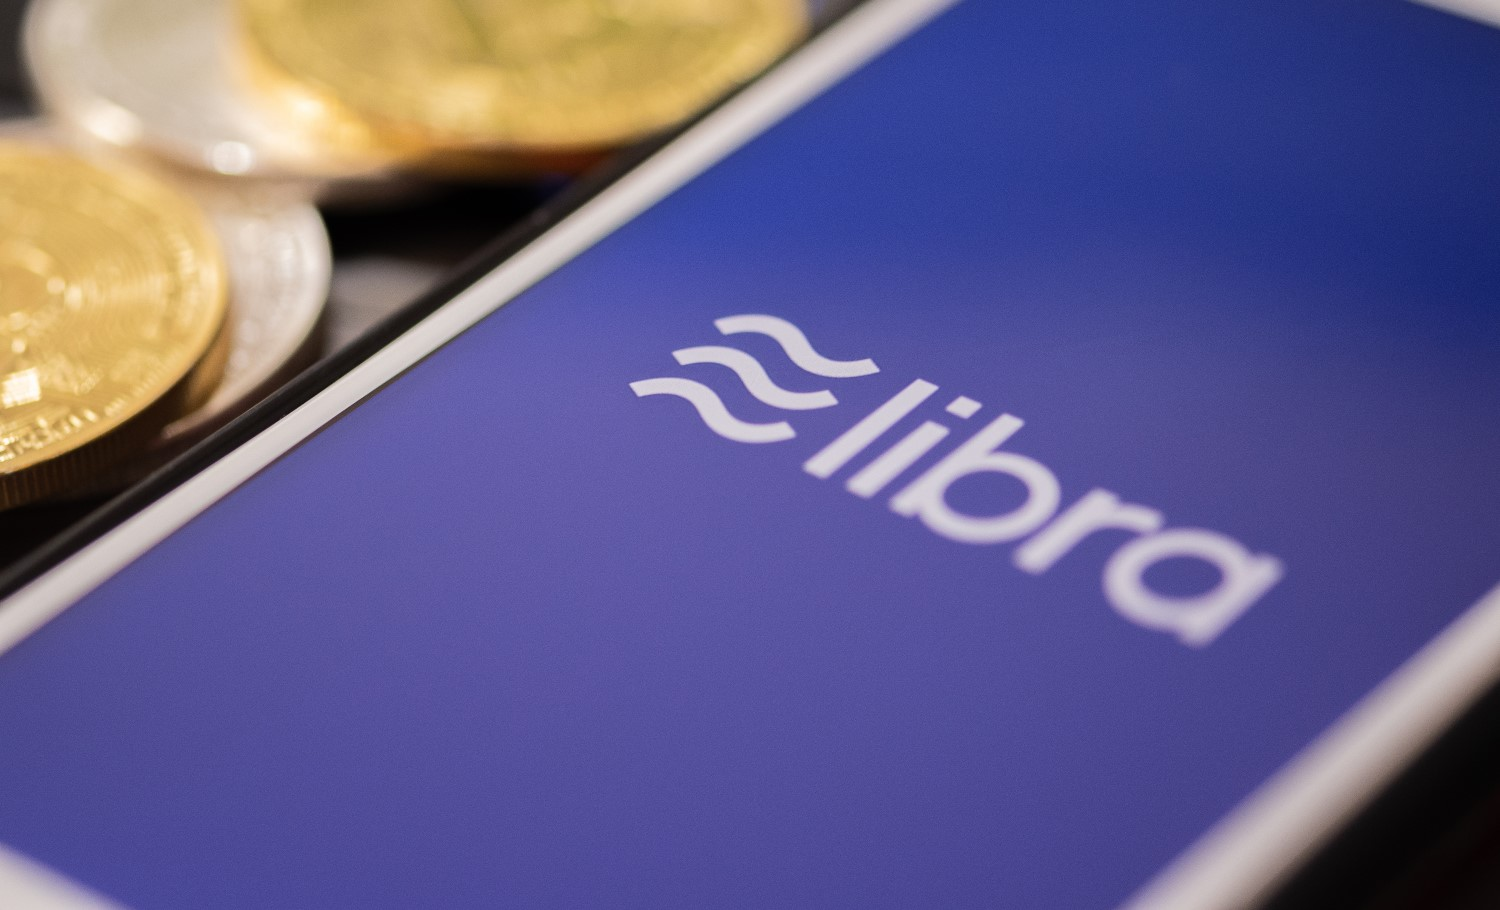 Facebook Libra Is Seeking to Register as a Payment System in Switzerland